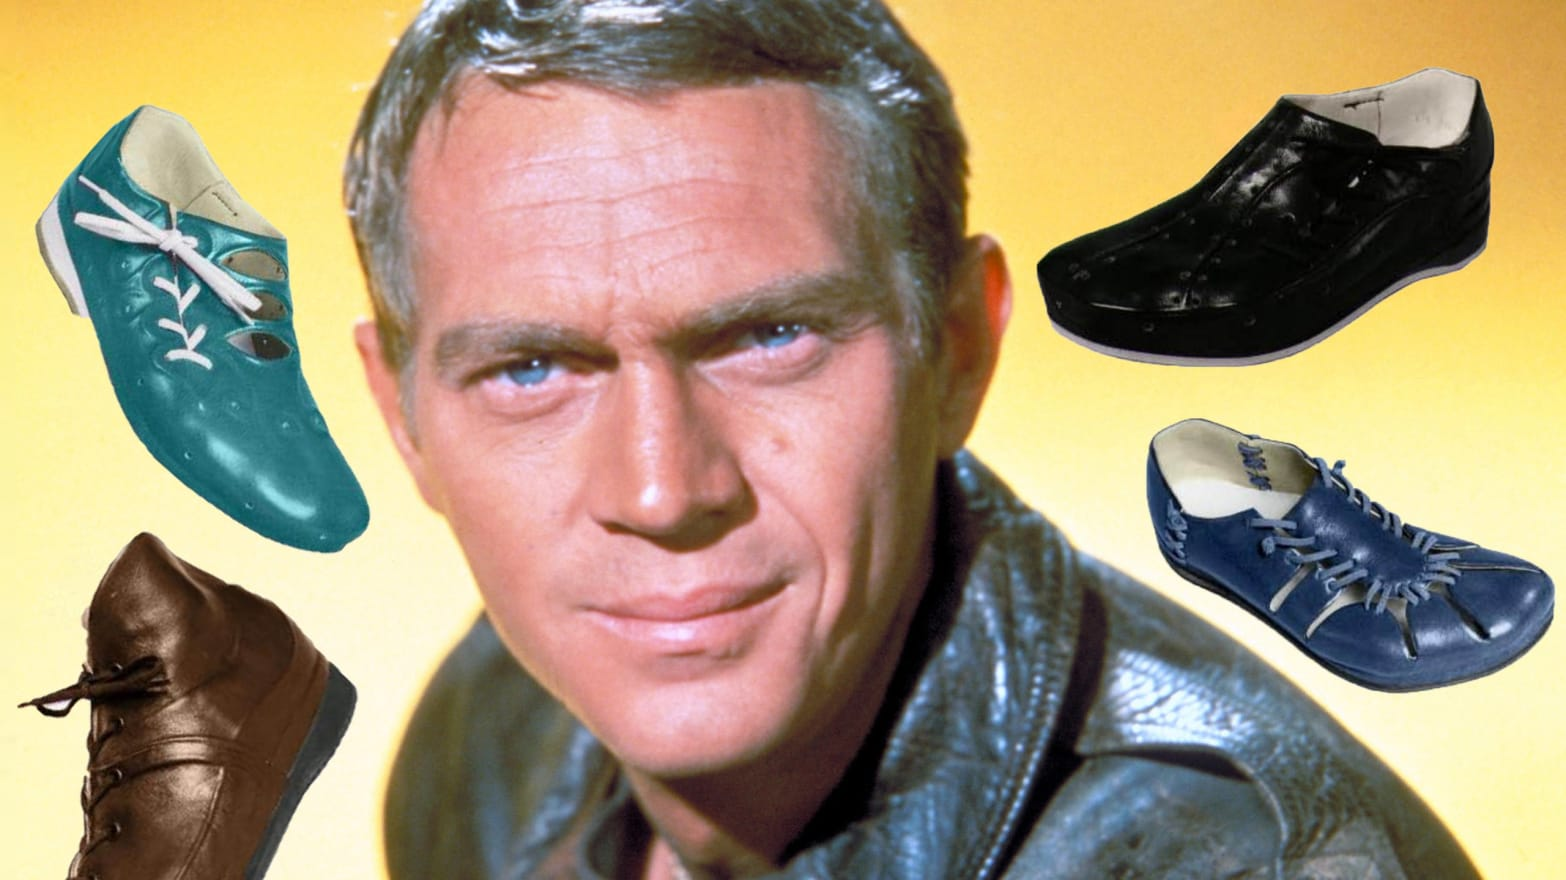 Did Steve McQueen Really Wear Those Geeky Murray Space Shoes?